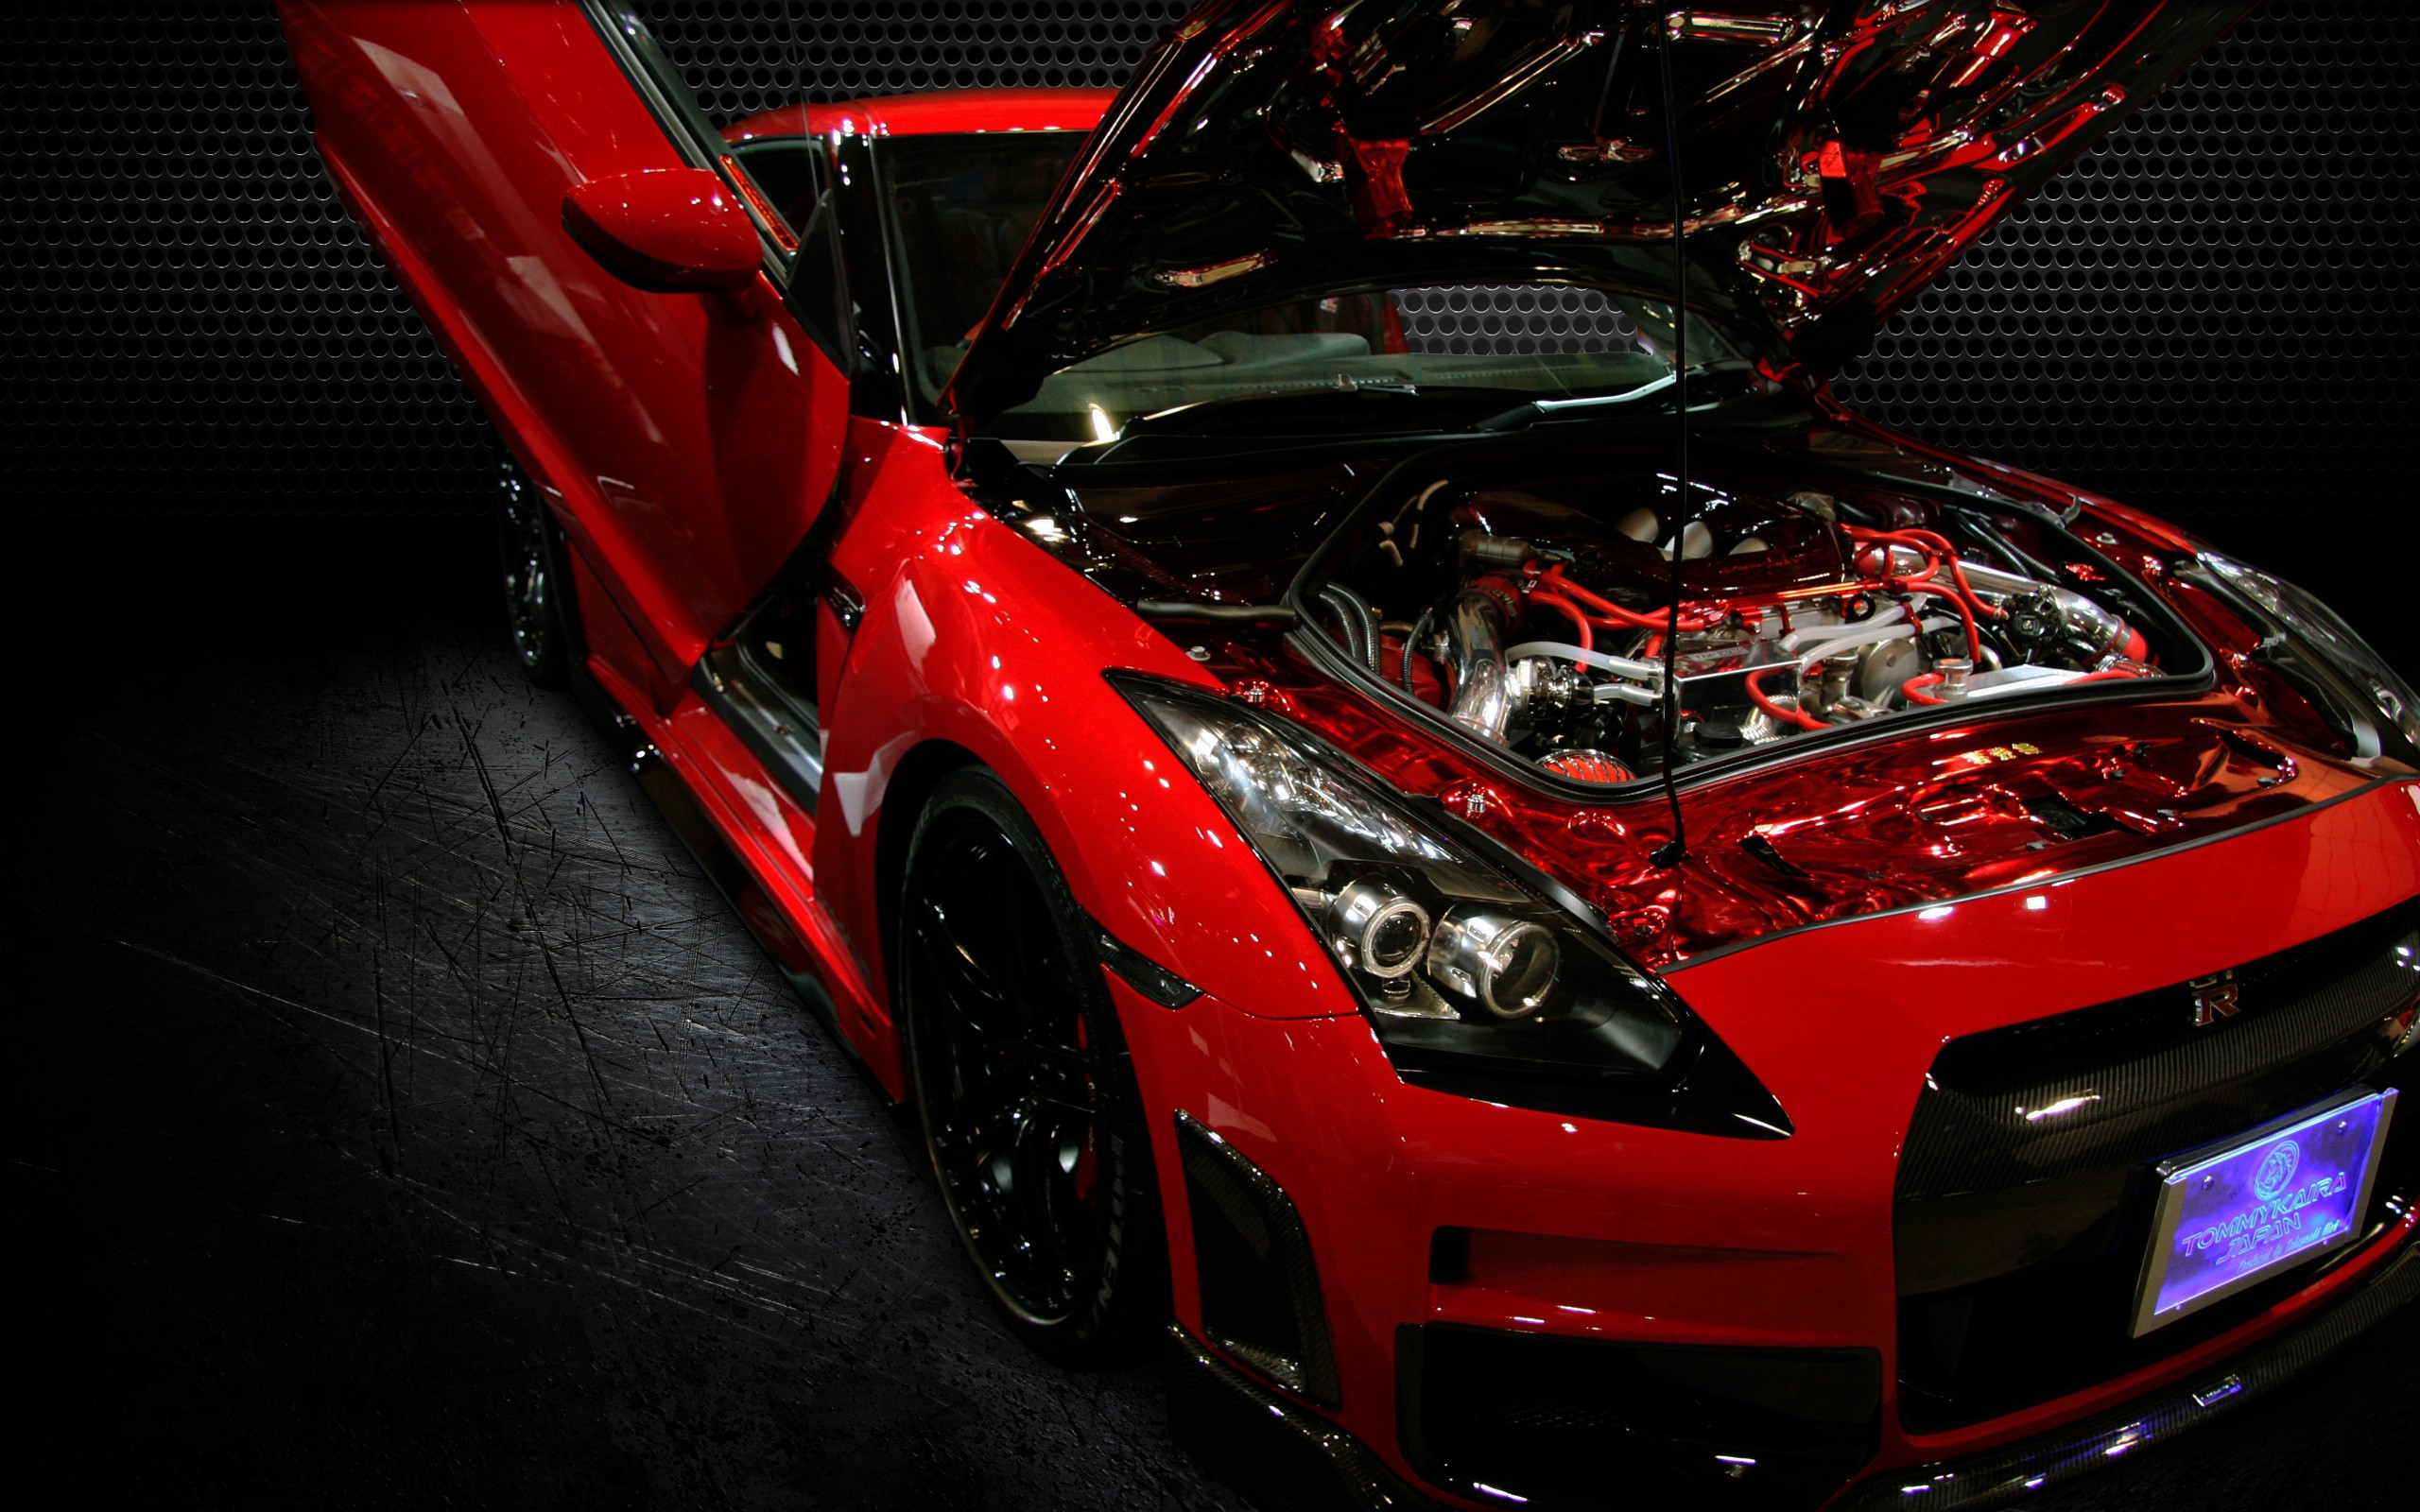 Cars Engines Tuning Nissan Gt R Fresh New Hd Wallpaper 2560x1600px